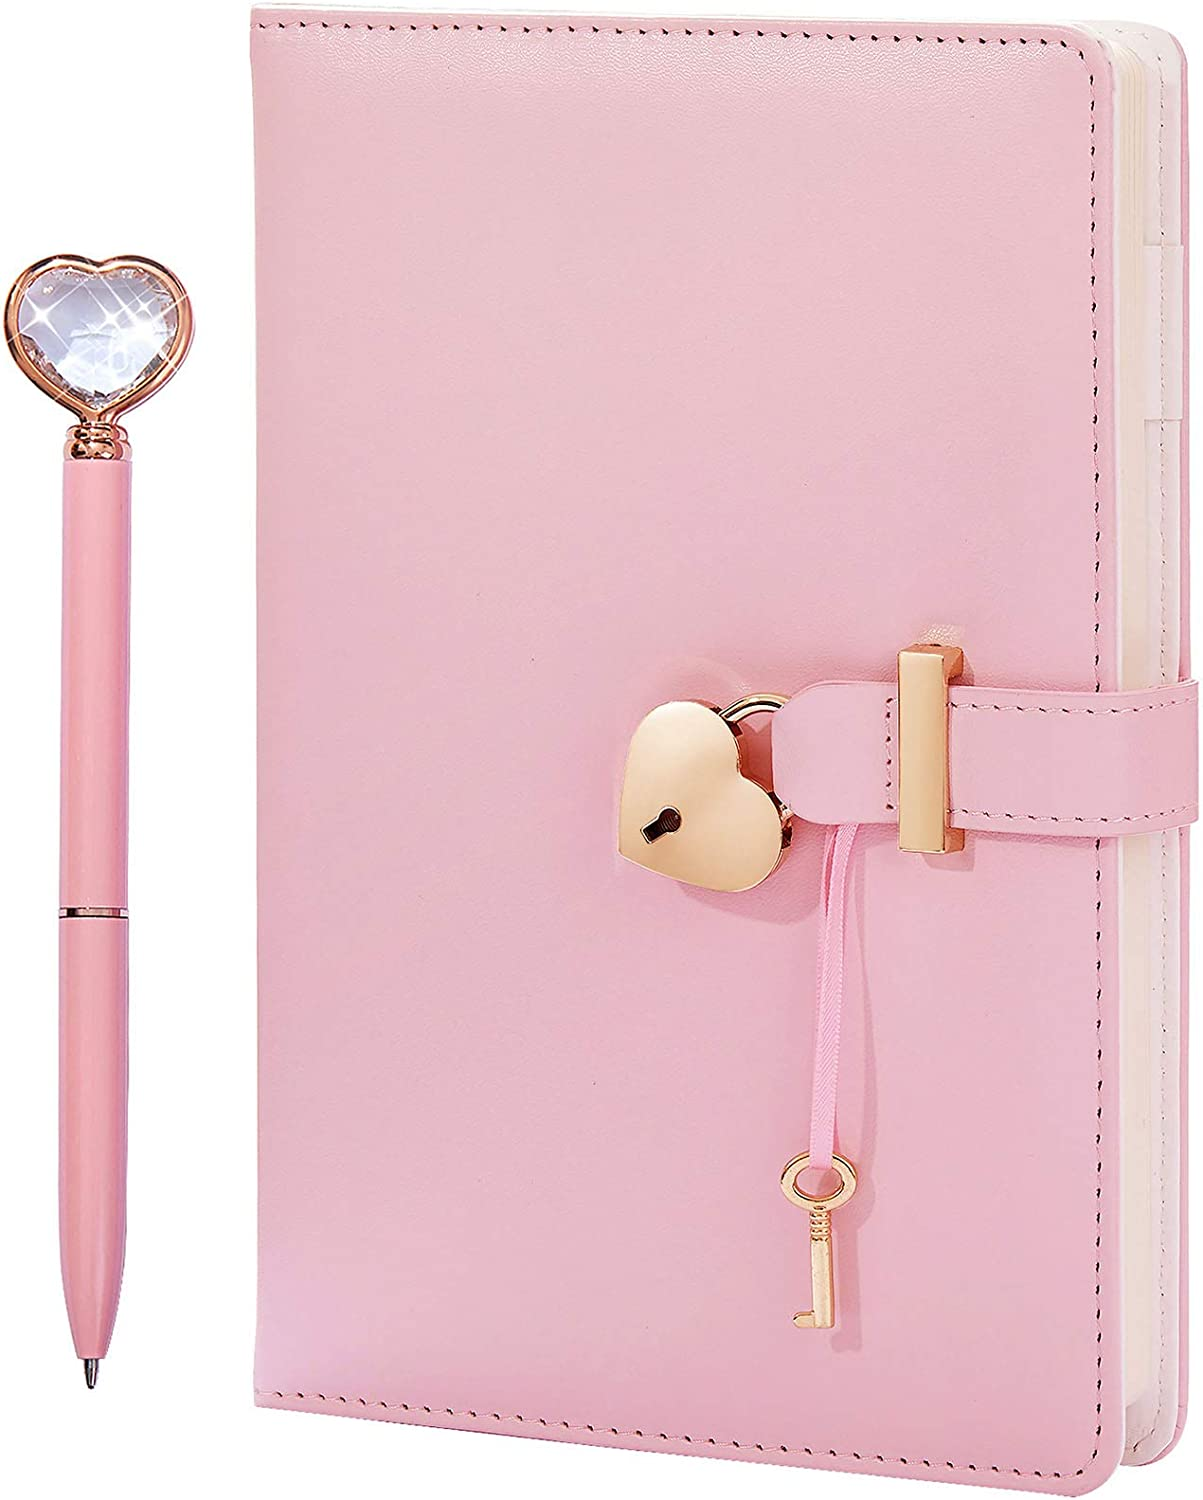 Heart Shaped Lock Diary with Key&Heart Diamond Pen,PU Leather Cover,A5,Journal Secret Notebook Gift for Women Girls (A5(8.5